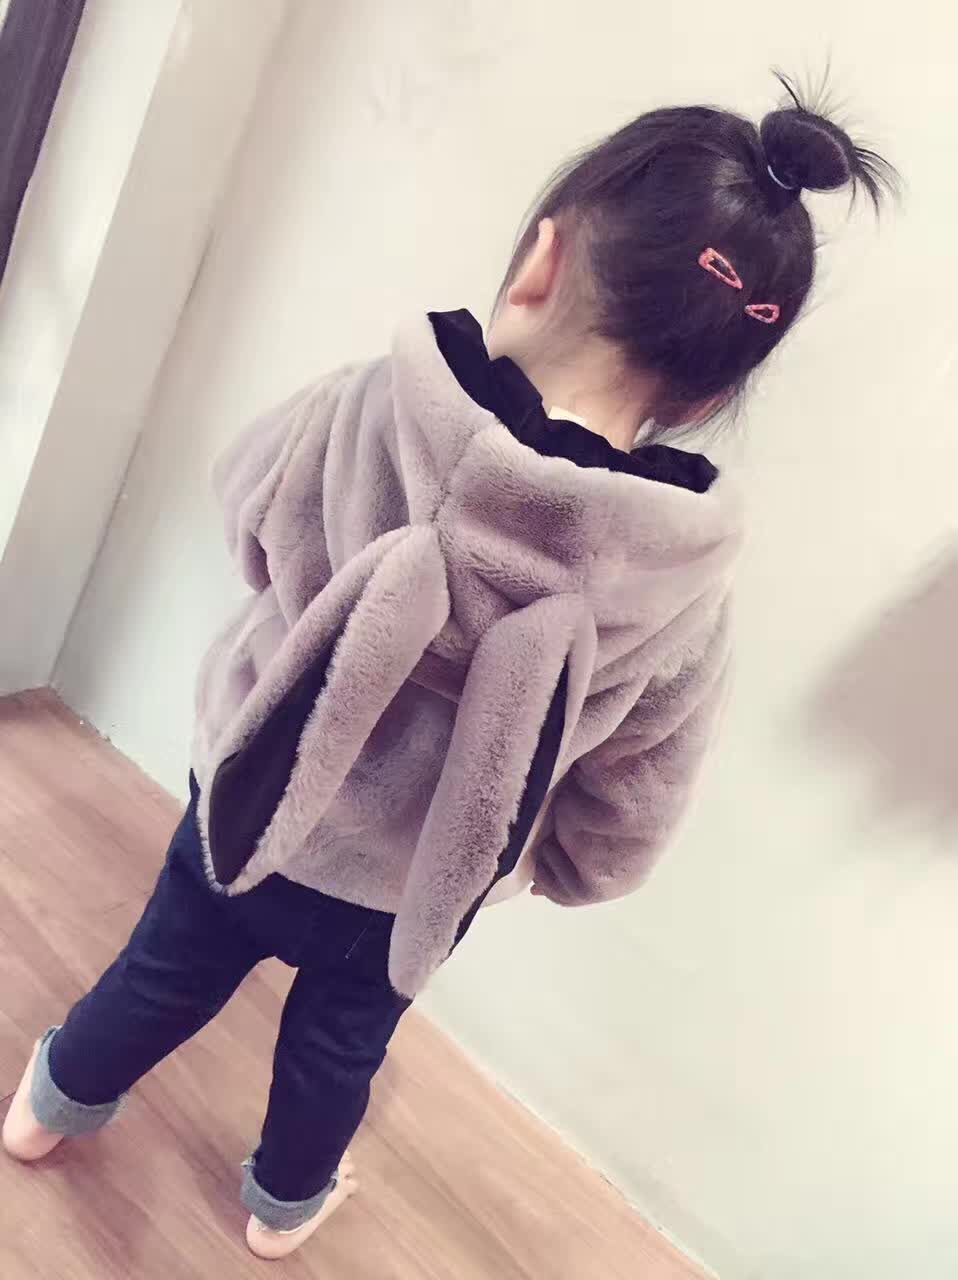 Girls Jackets & Coats New 2016 Arrivals Fashion Hooded Thick Warm Parka Down Bunny Ear Kid jacket Children Outerwears for Winter casual 2016 winter jacket for boys warm jackets coats outerwears thick hooded down cotton jackets for children boy winter parkas